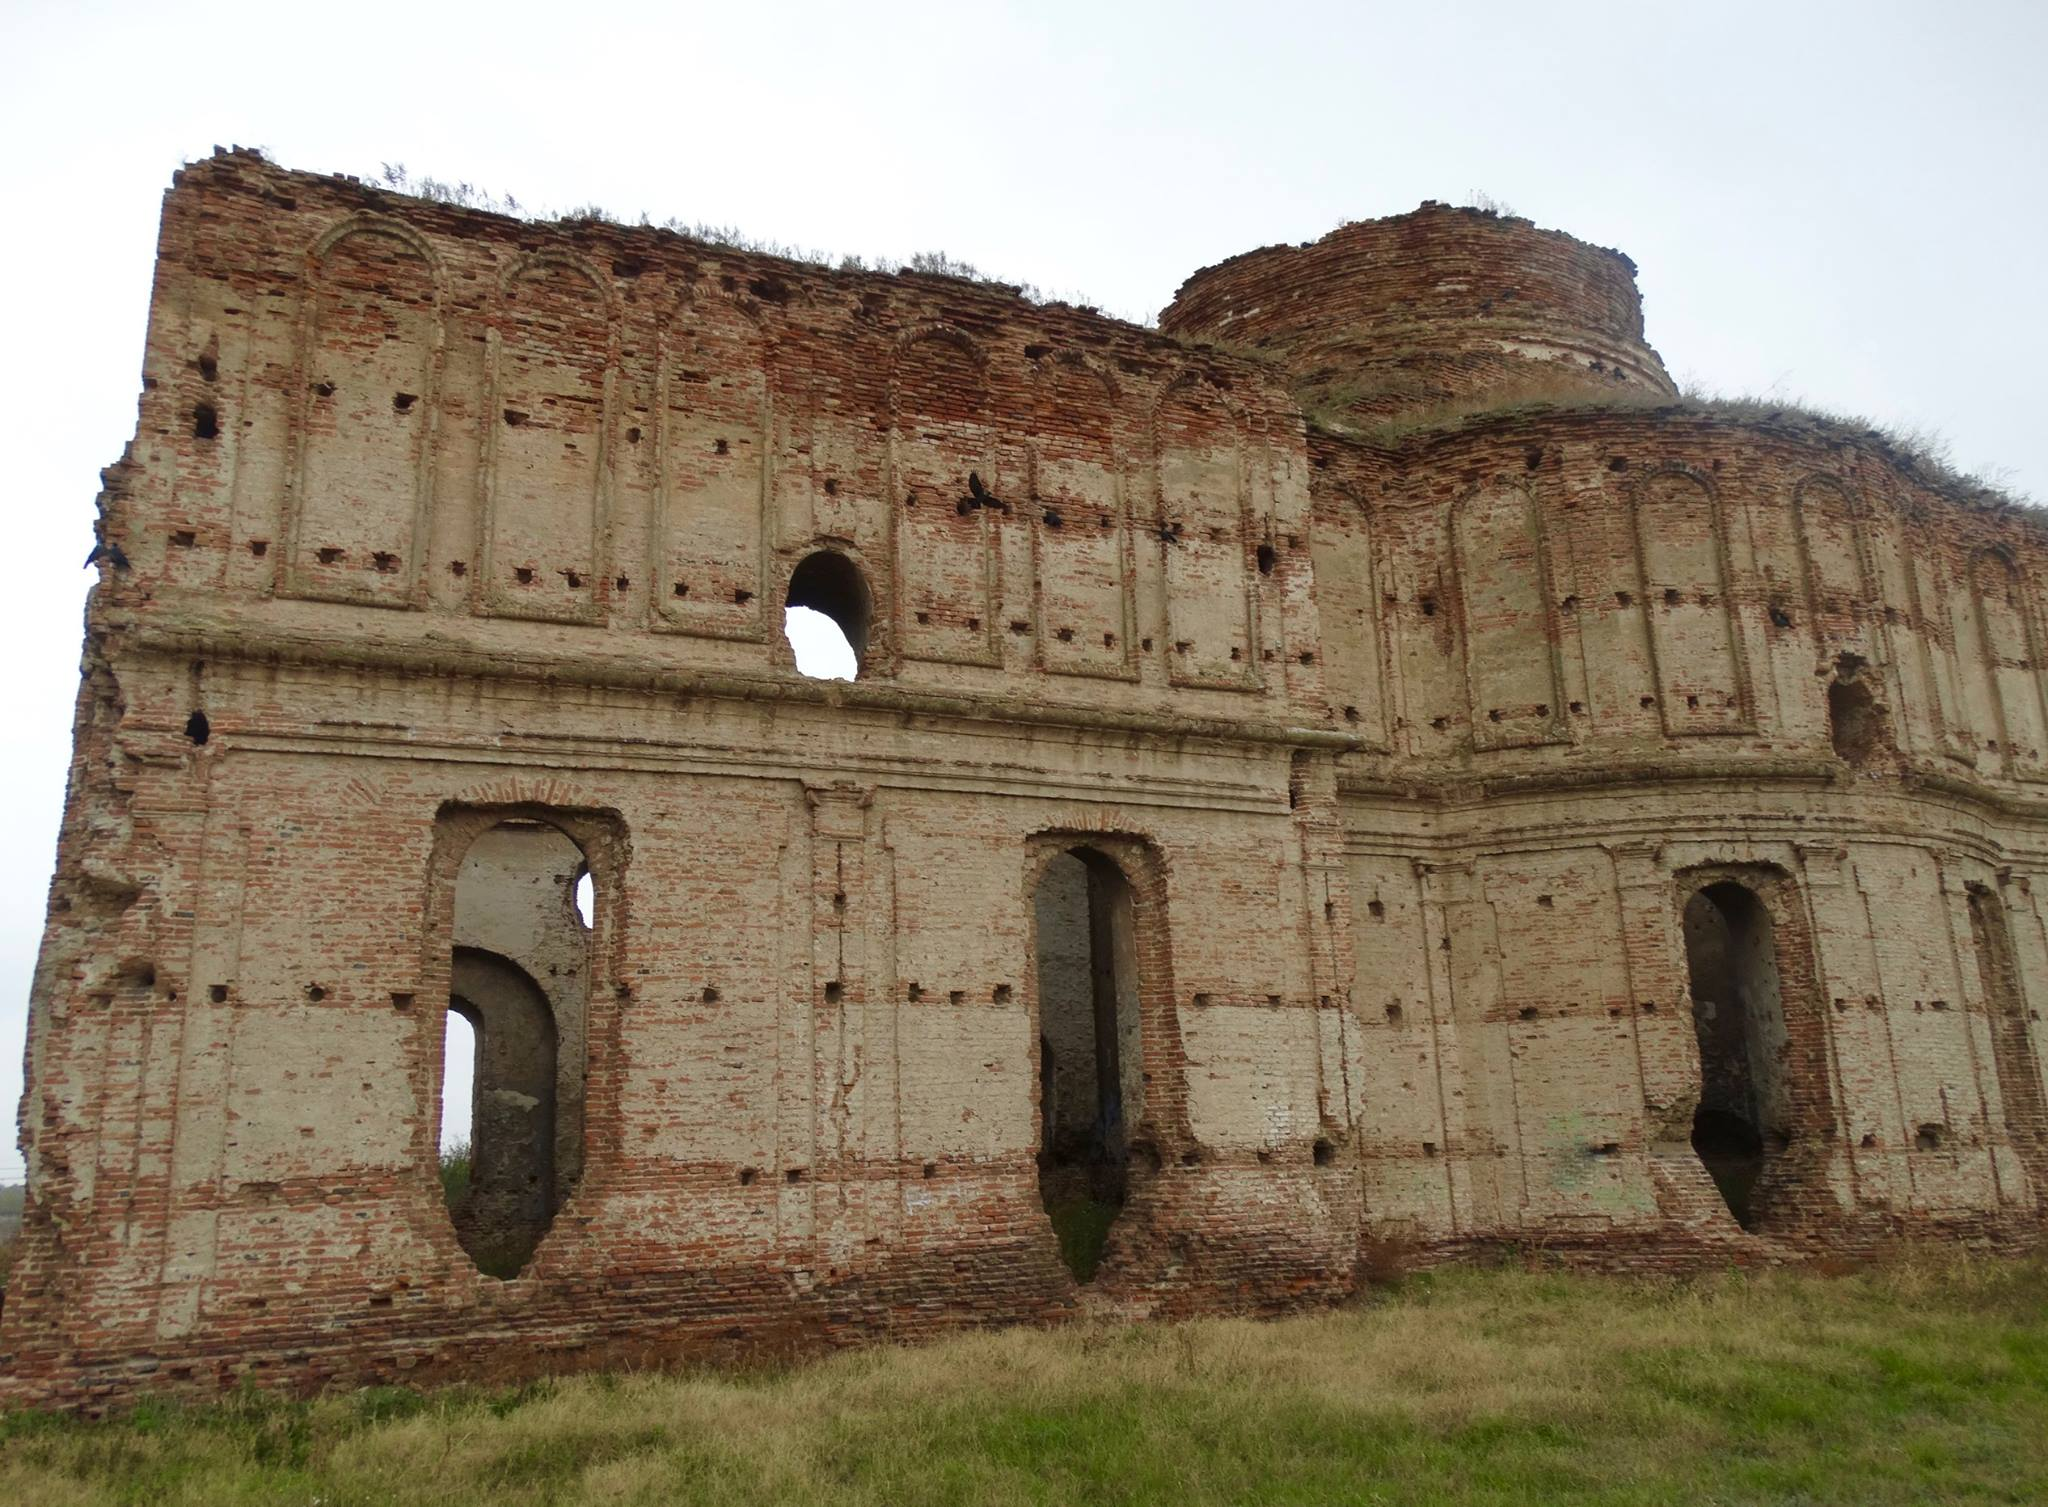 Built in 1790, Chiajna Monastery now sits abandoned in the middle of a grassy field on the outskirts of Bucharest. Many Romanians believe the site to be haunted. It is in desperate need of restoration and preservation.